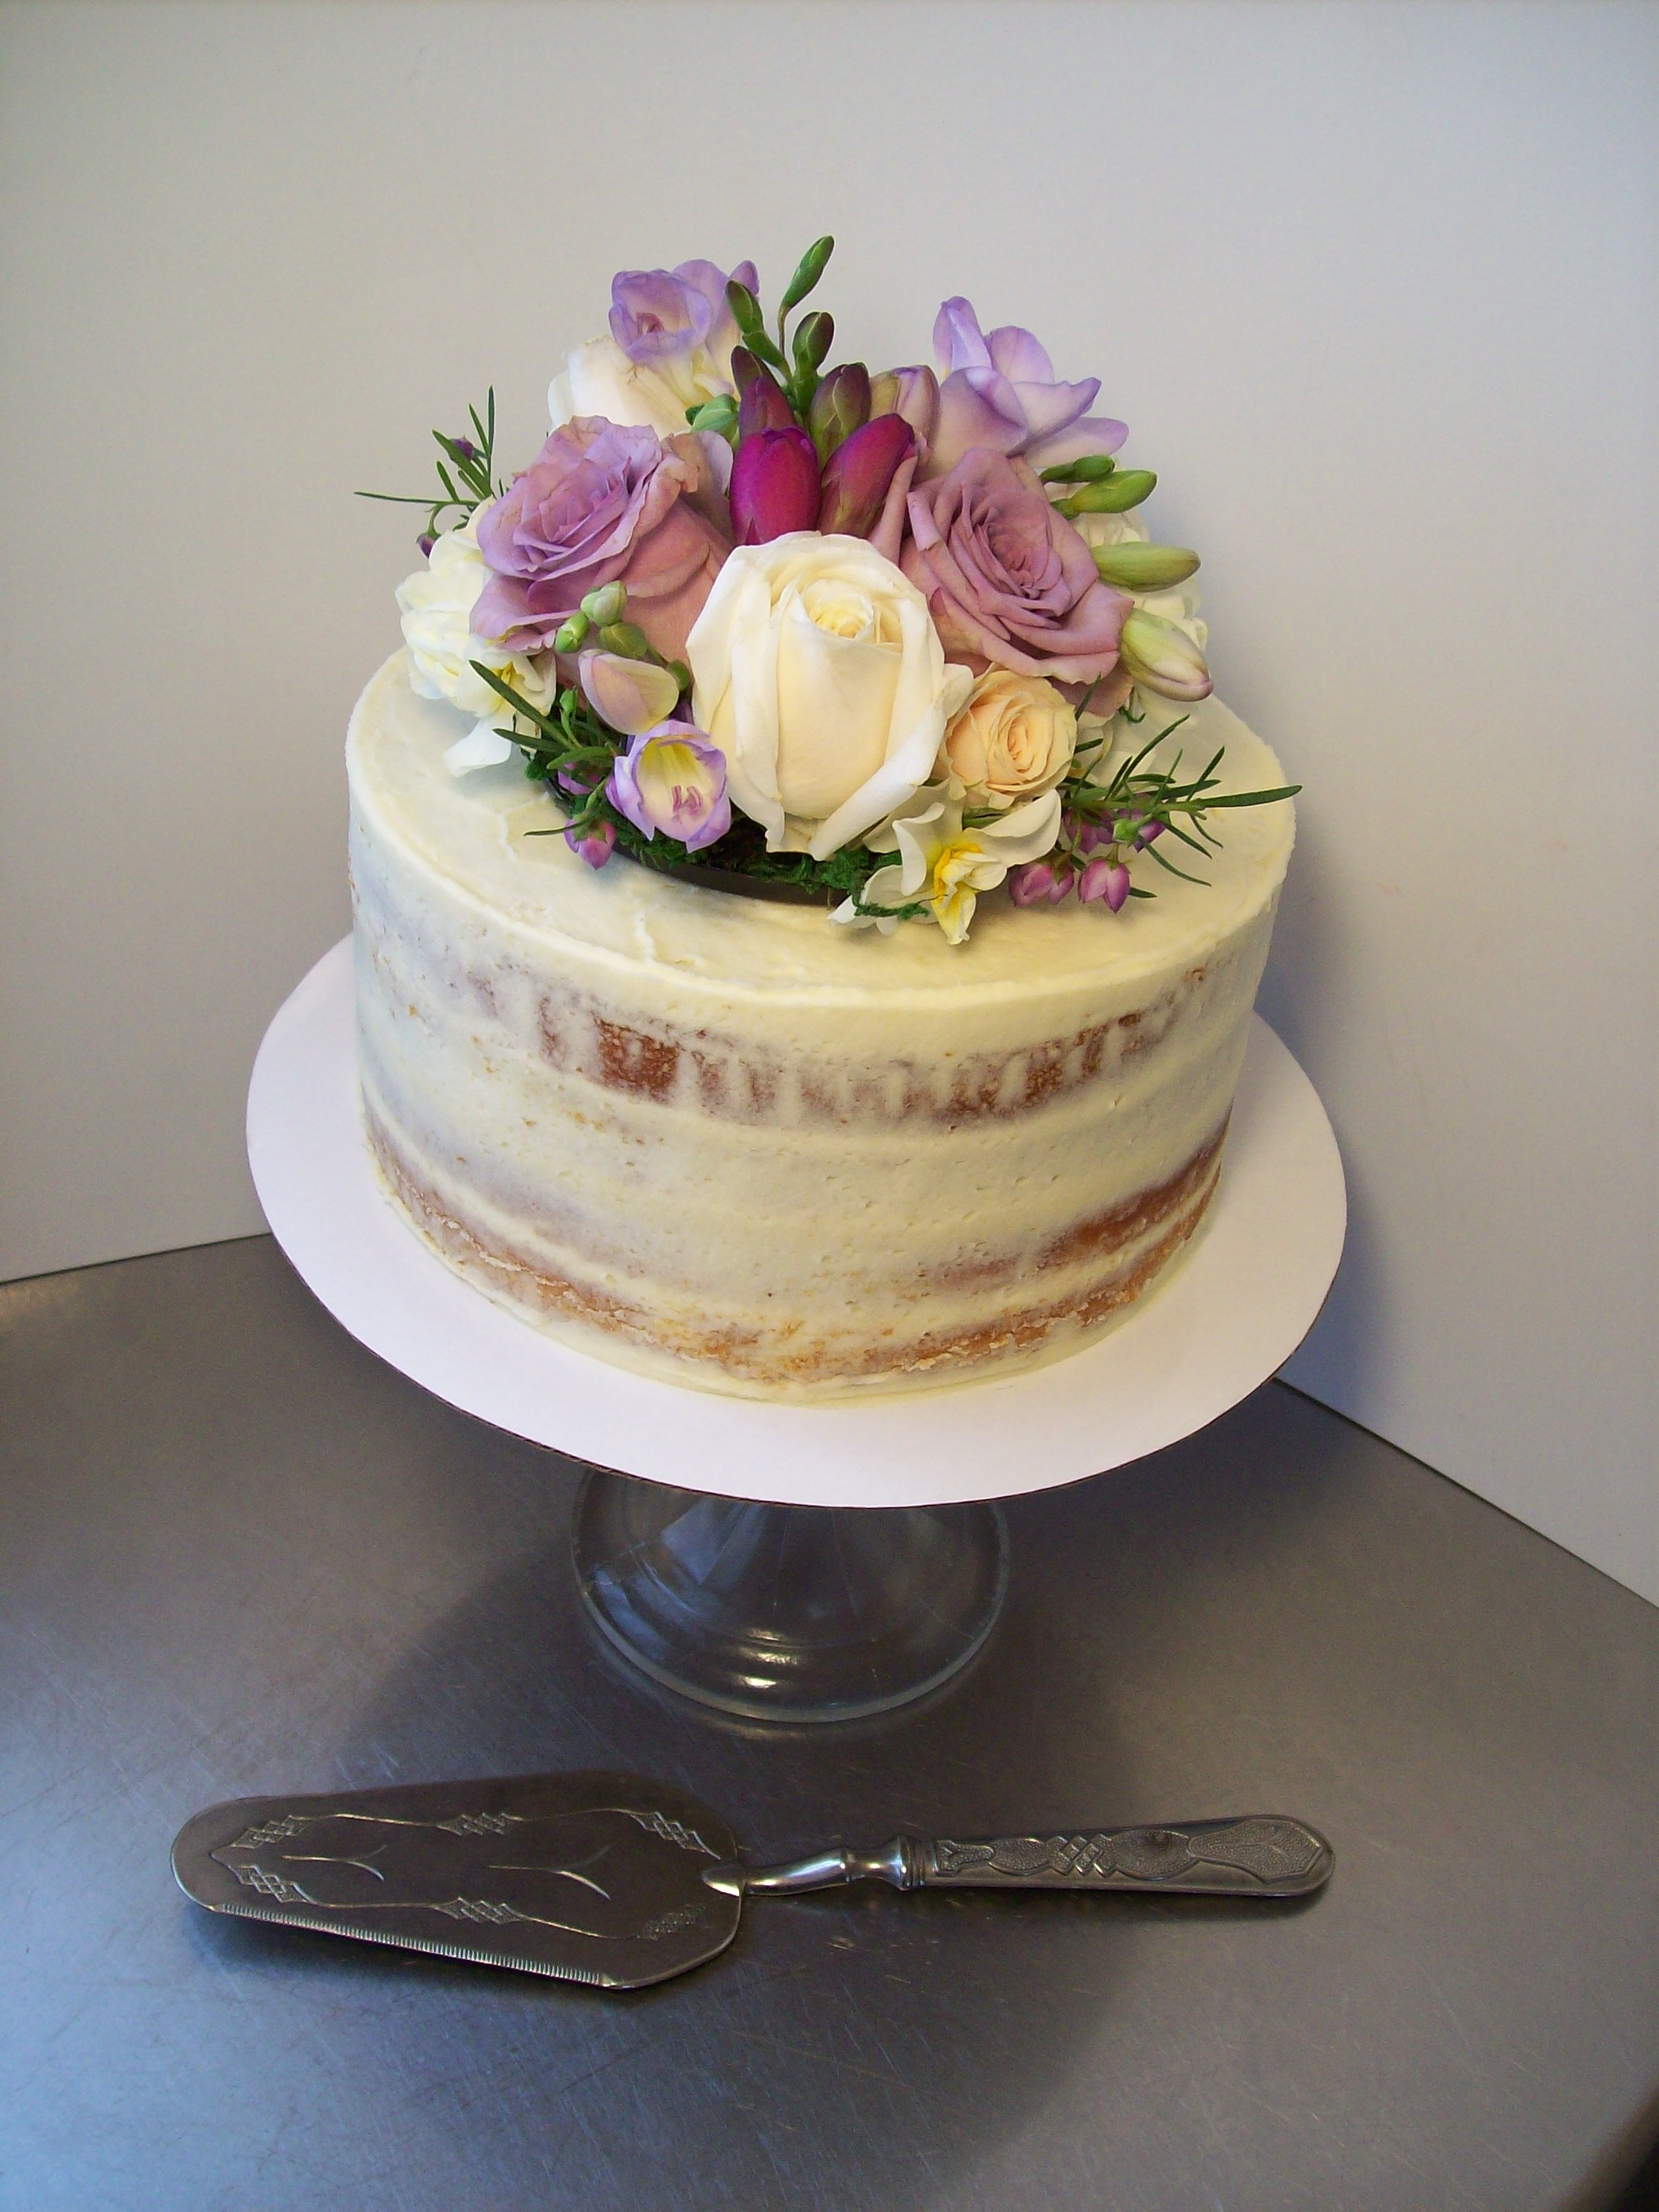 4 Tier Wedding Cake $595 (flowers not included